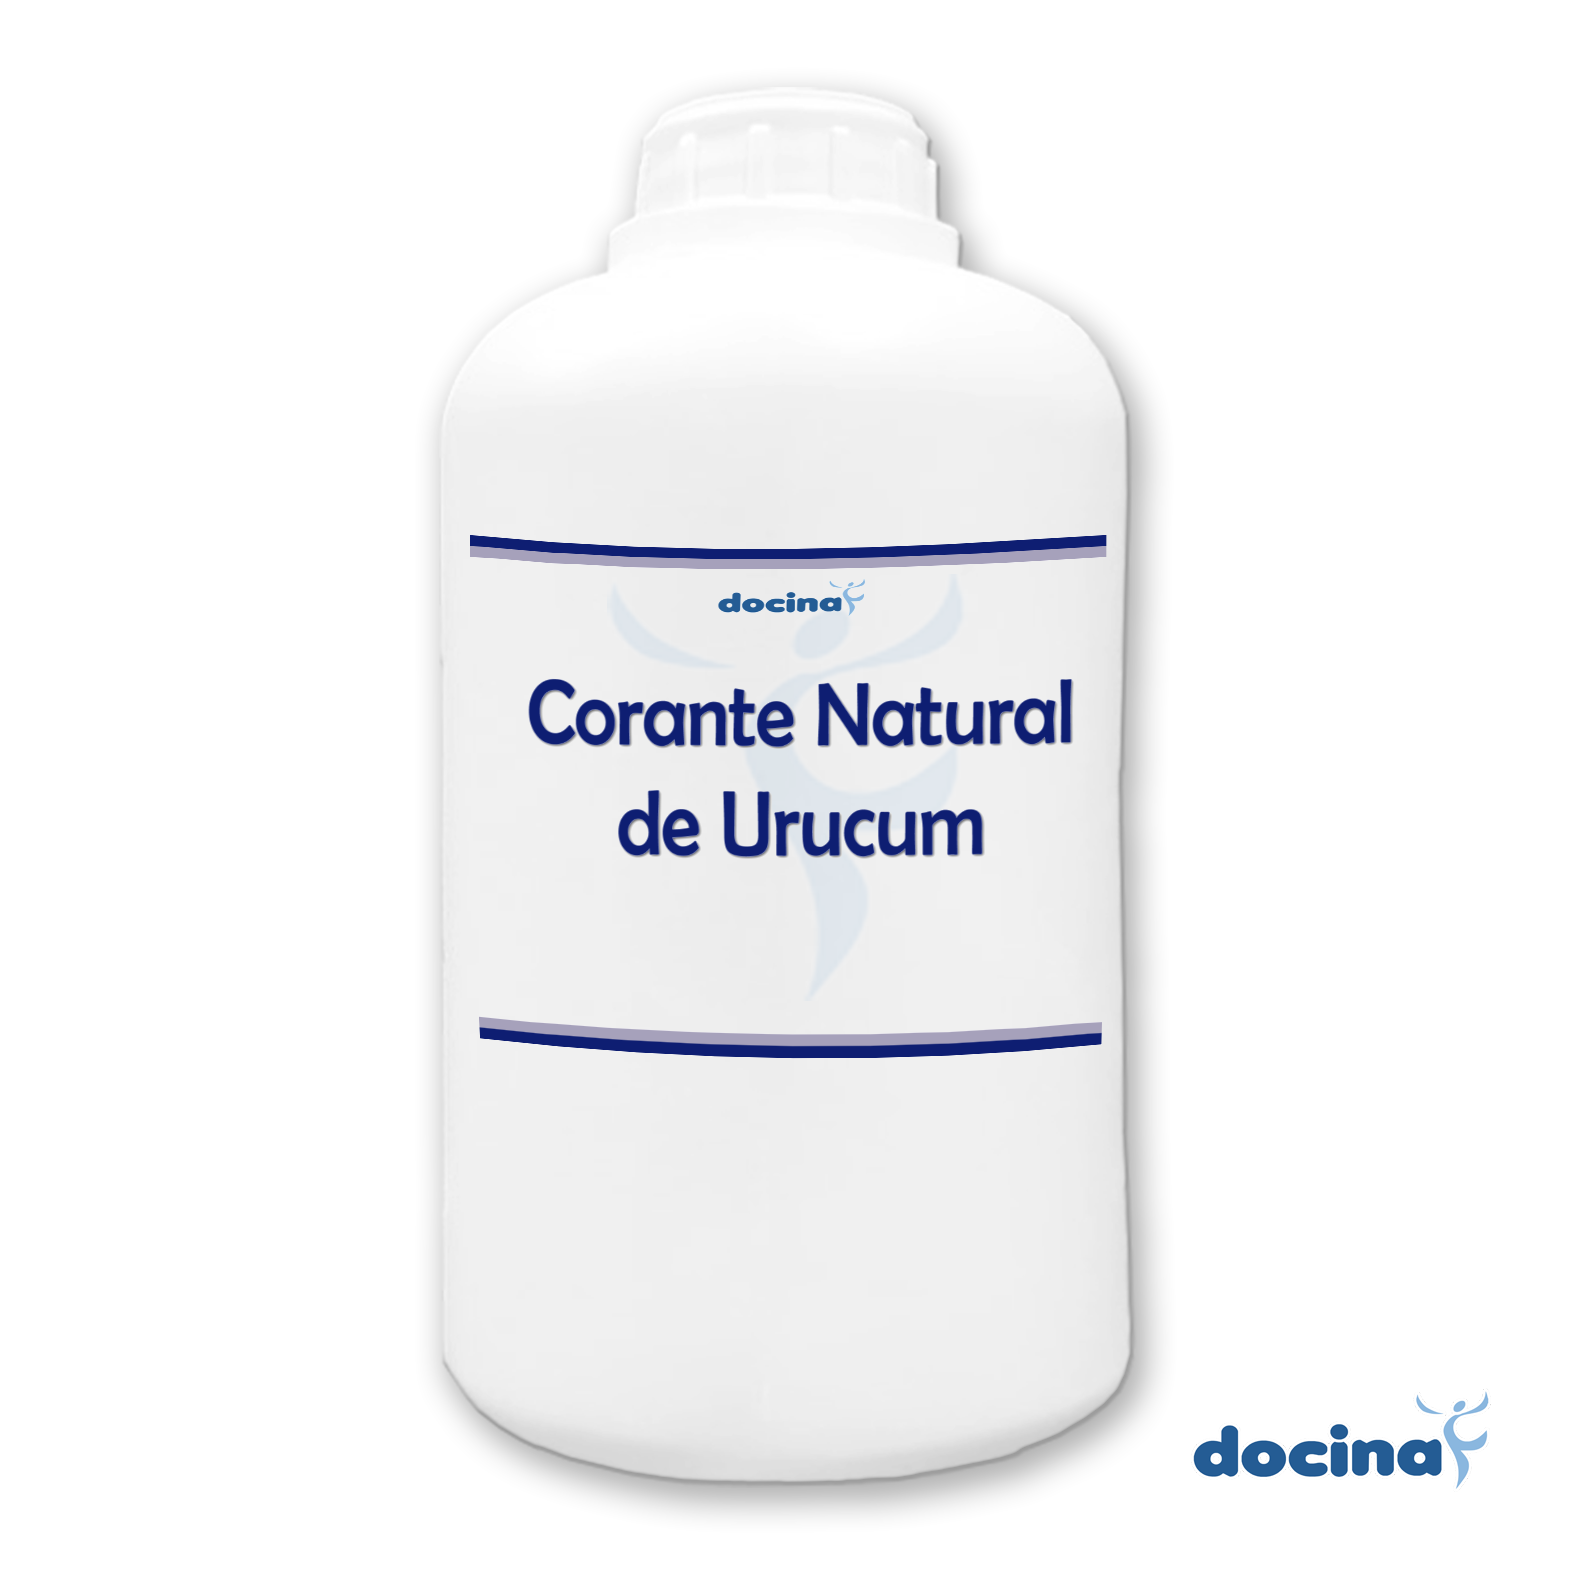 Corante Natural - Urucum